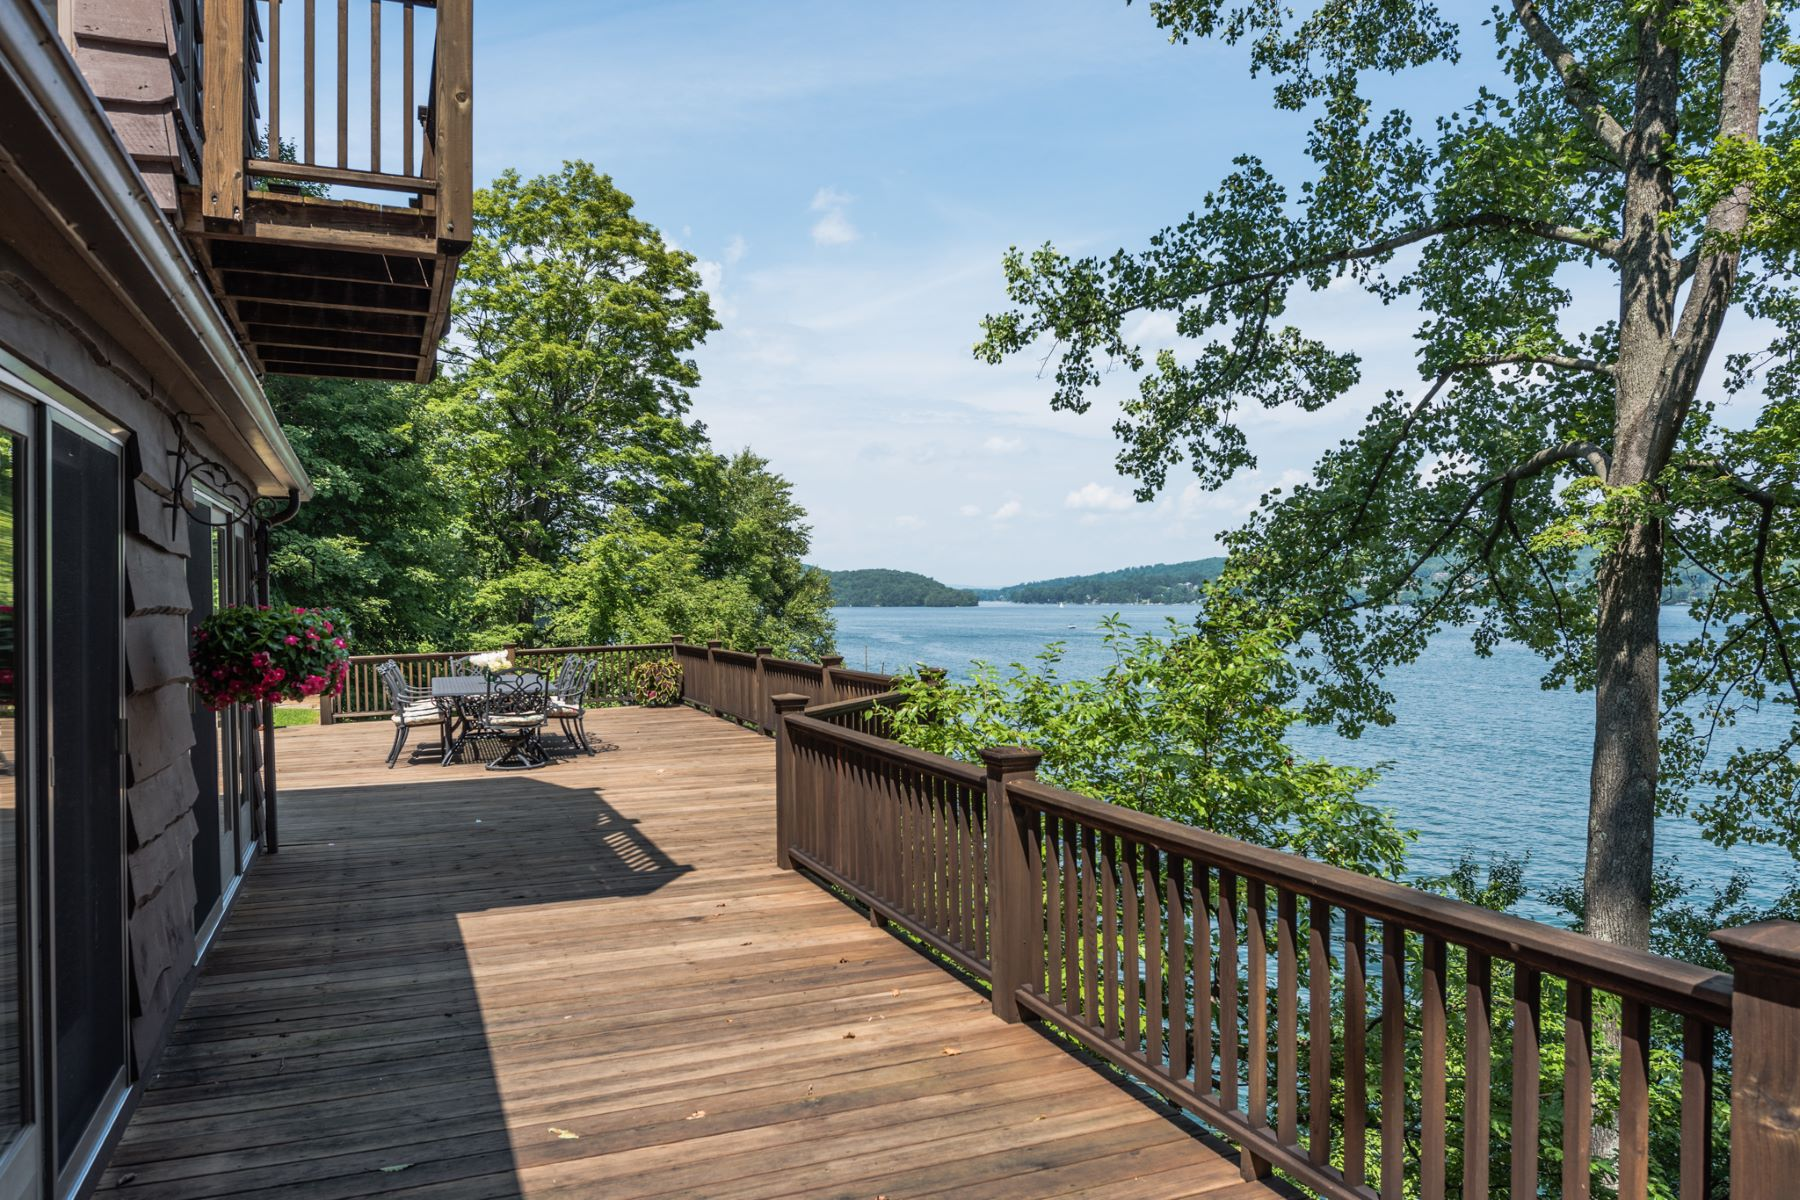 Single Family Home for Sale at Enchanting Candlewood Lakefront Property New Fairfield, Connecticut 06812 United States